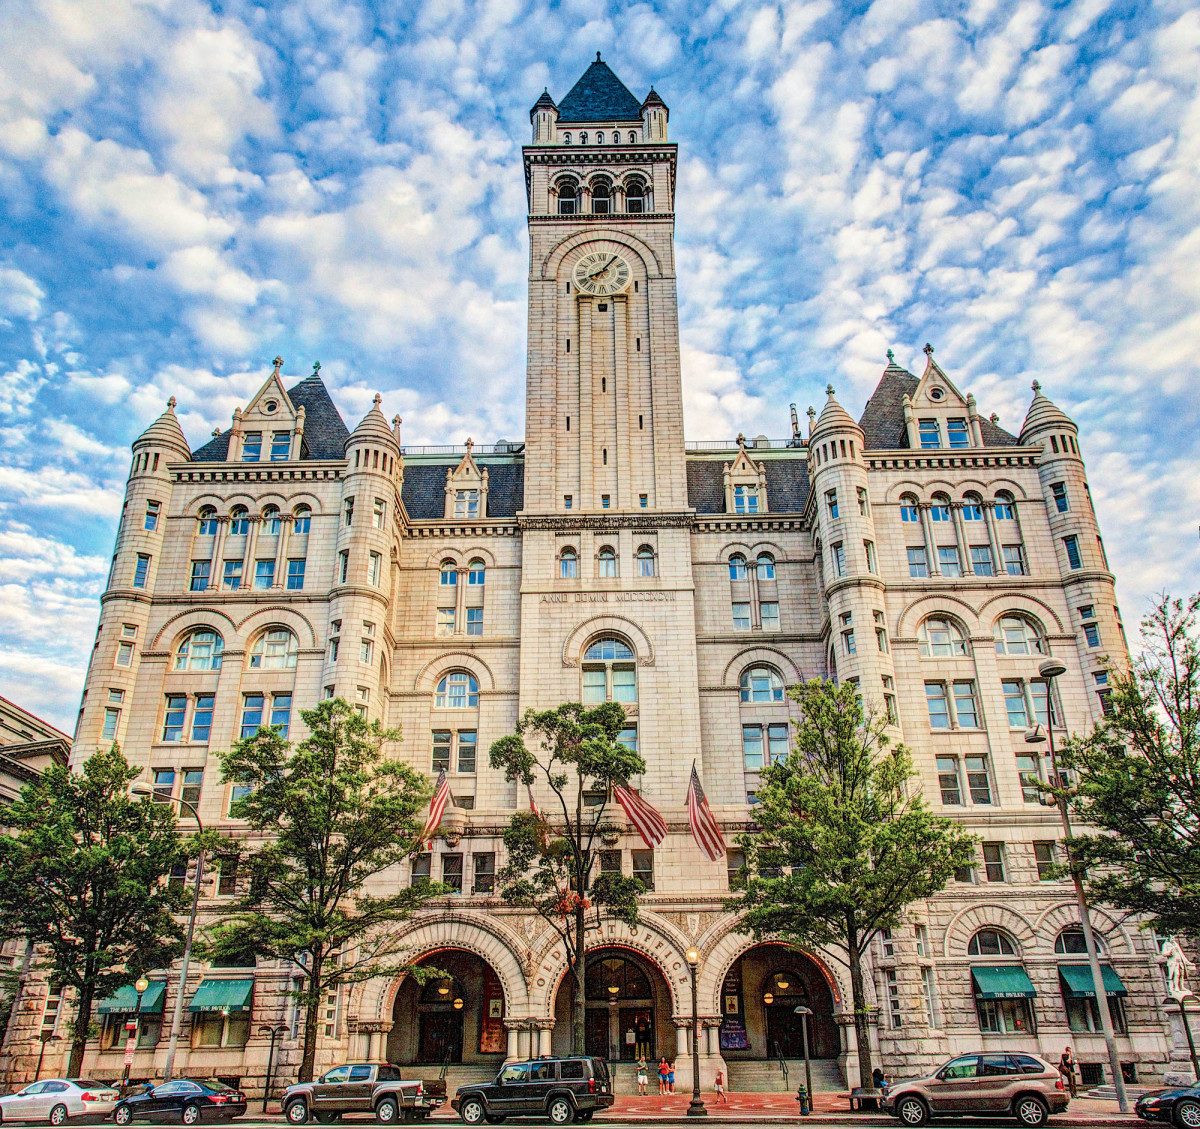 Trump International Hotel, historic tax credit